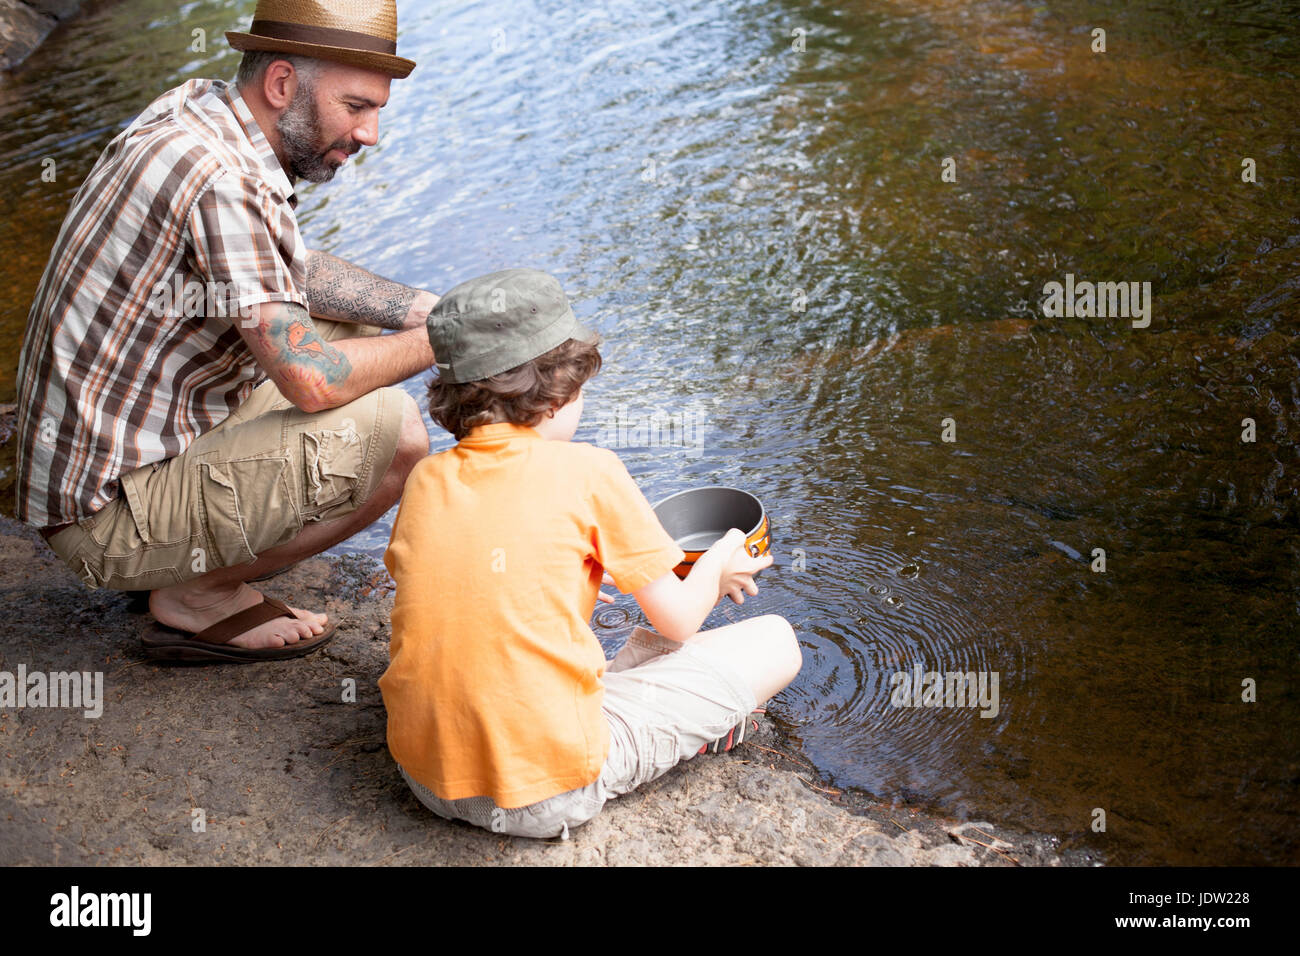 Father and son panning for gold in river - Stock Image